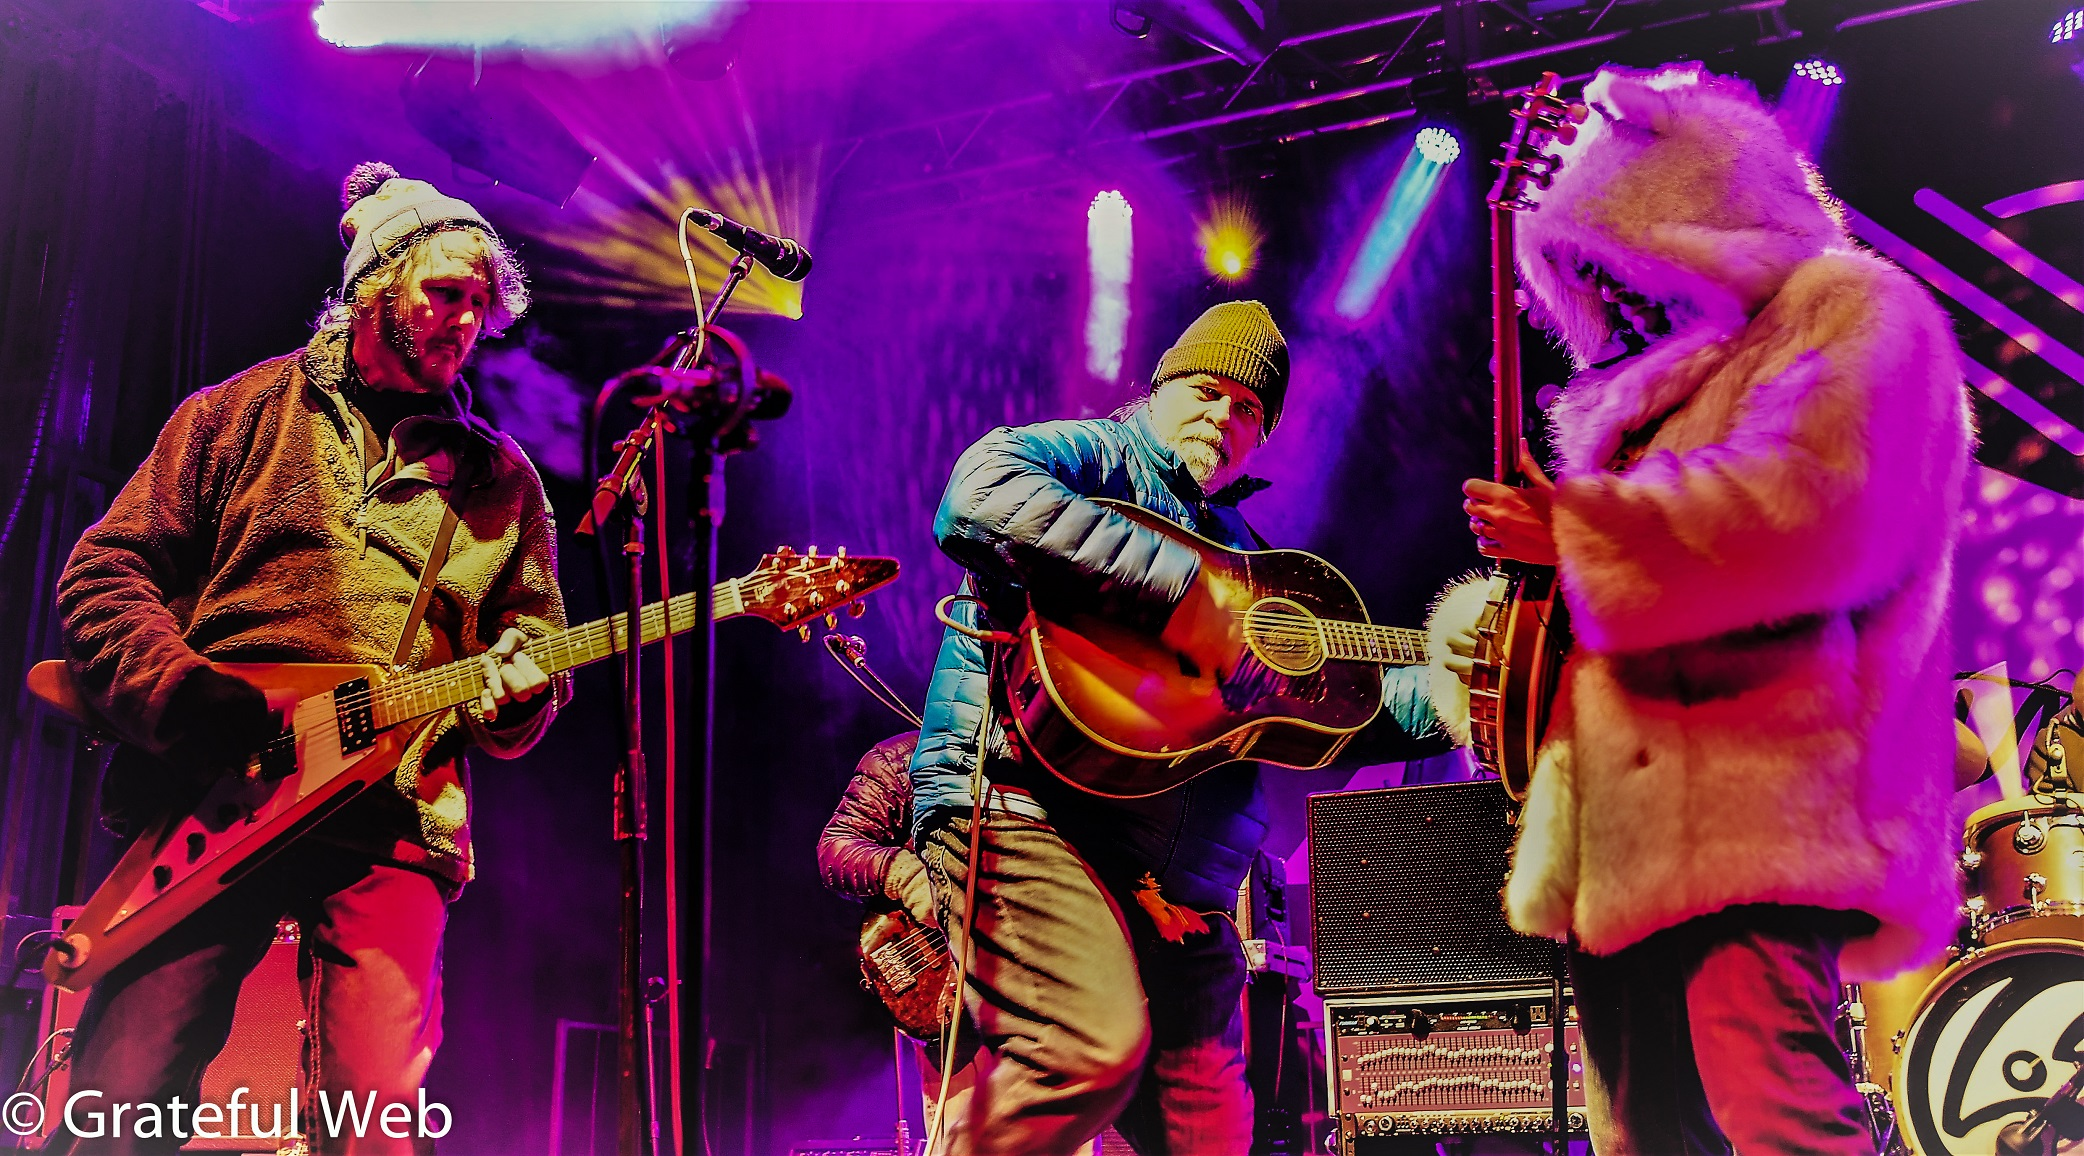 Leftover Salmon Announces Thanksgiving Leftovers: A Weekend of Giving